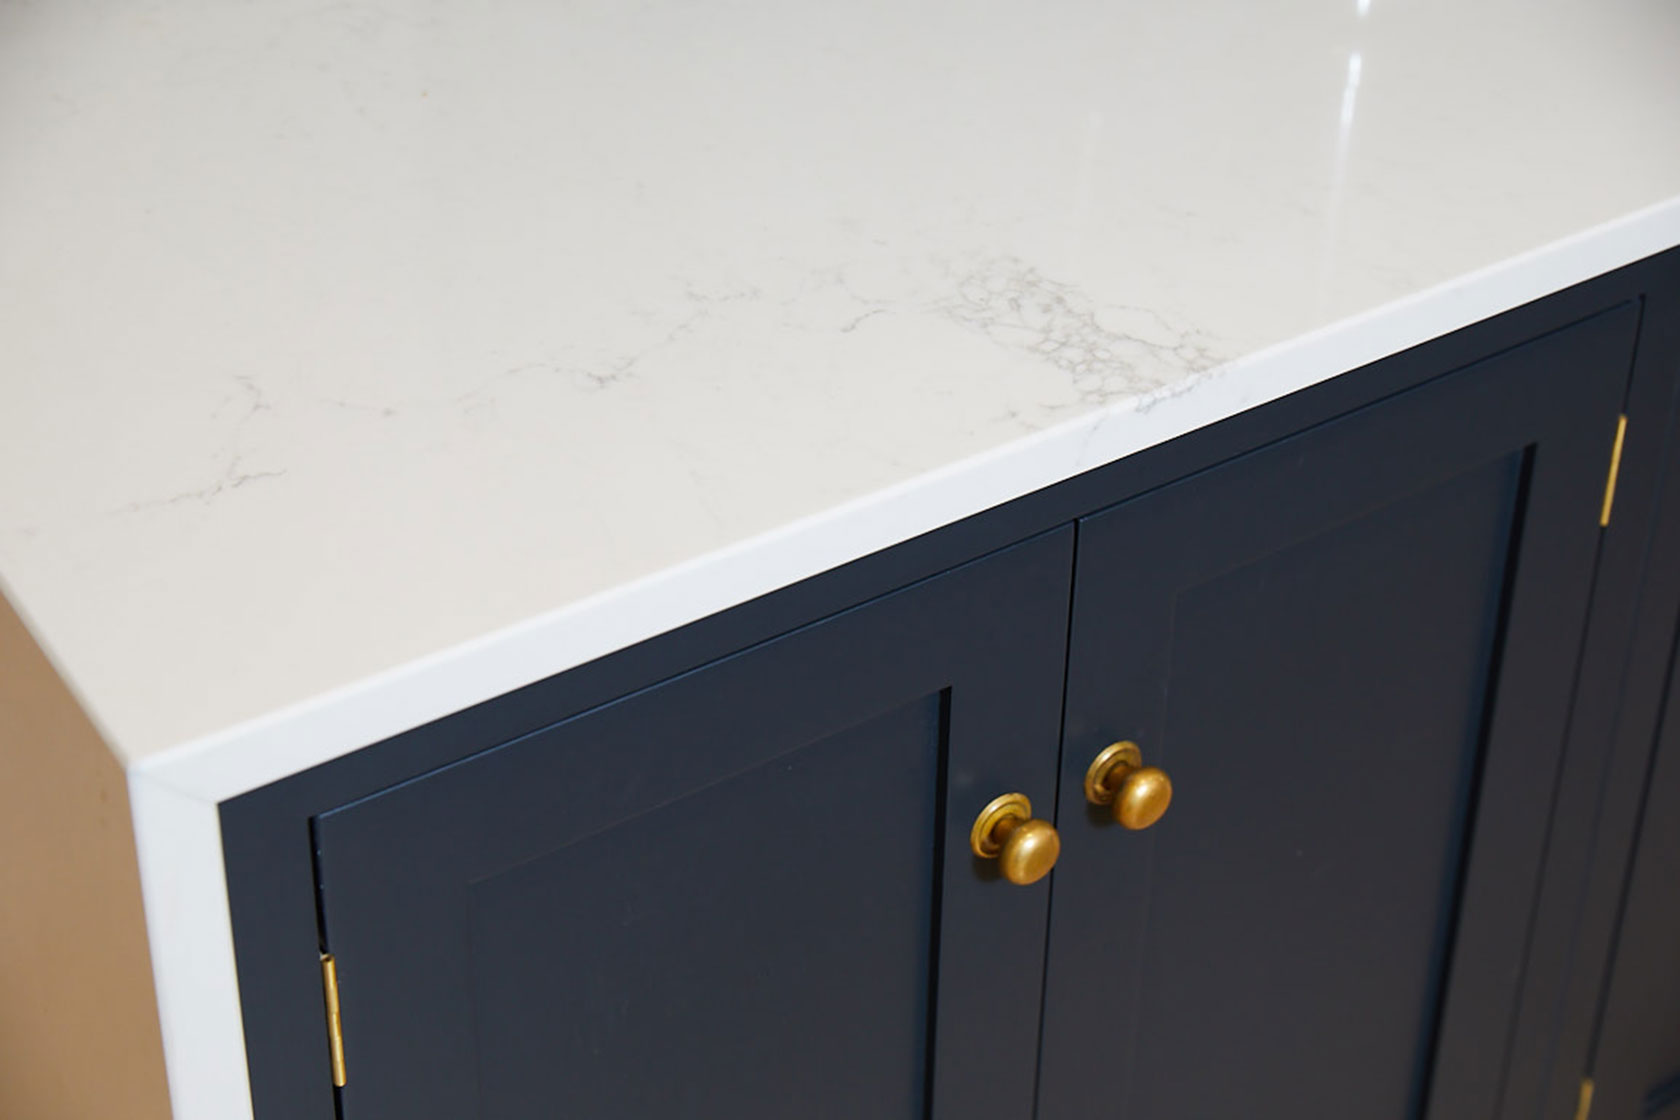 Caesarstone worktop sits on bespoke shaker cabinets with burnt brass knobs